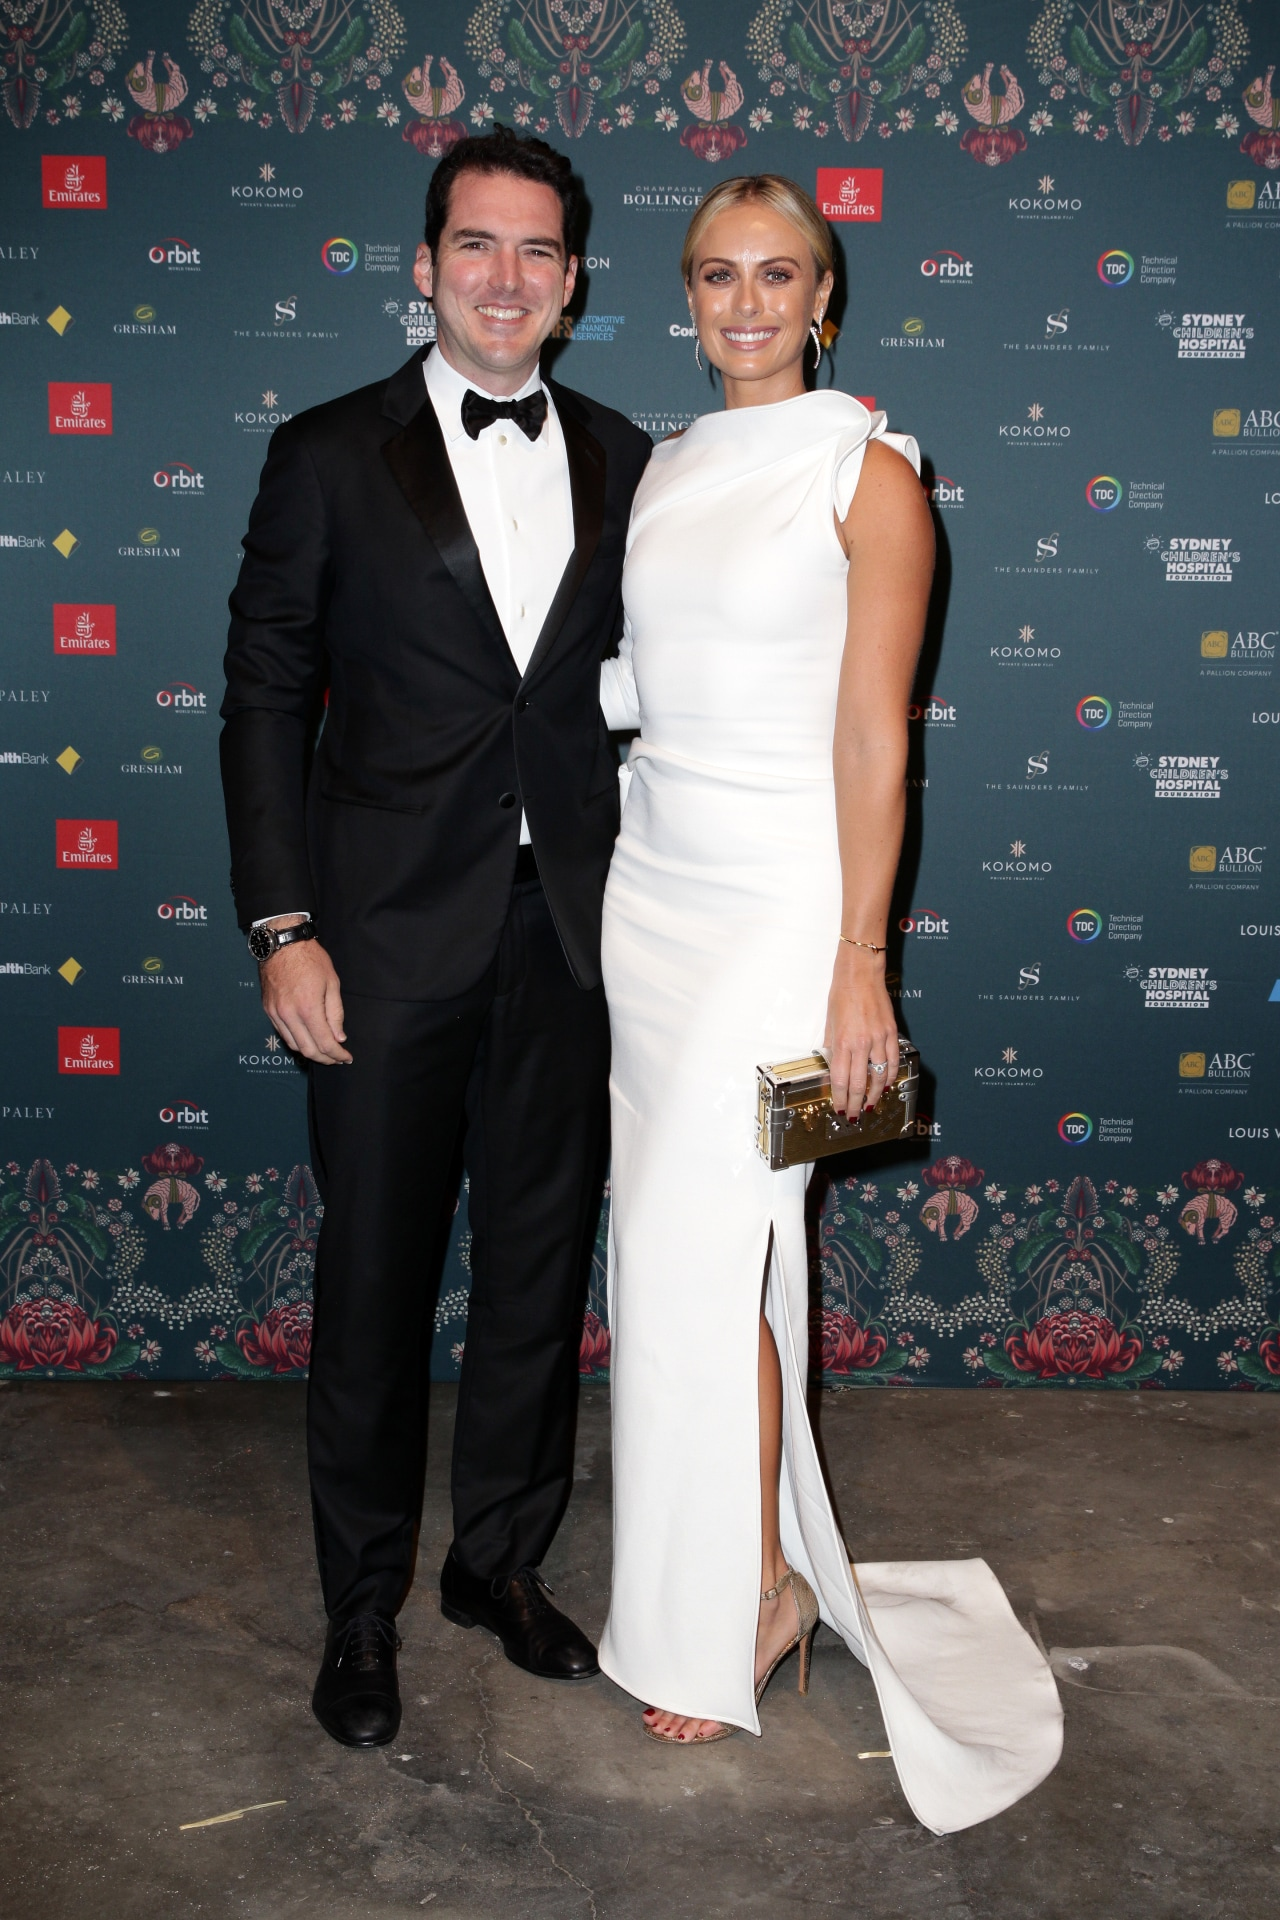 Peter Stefanovic and Sylvia Jeffreys attend The Gold Dinner fundraiser. Image credit: Supplied